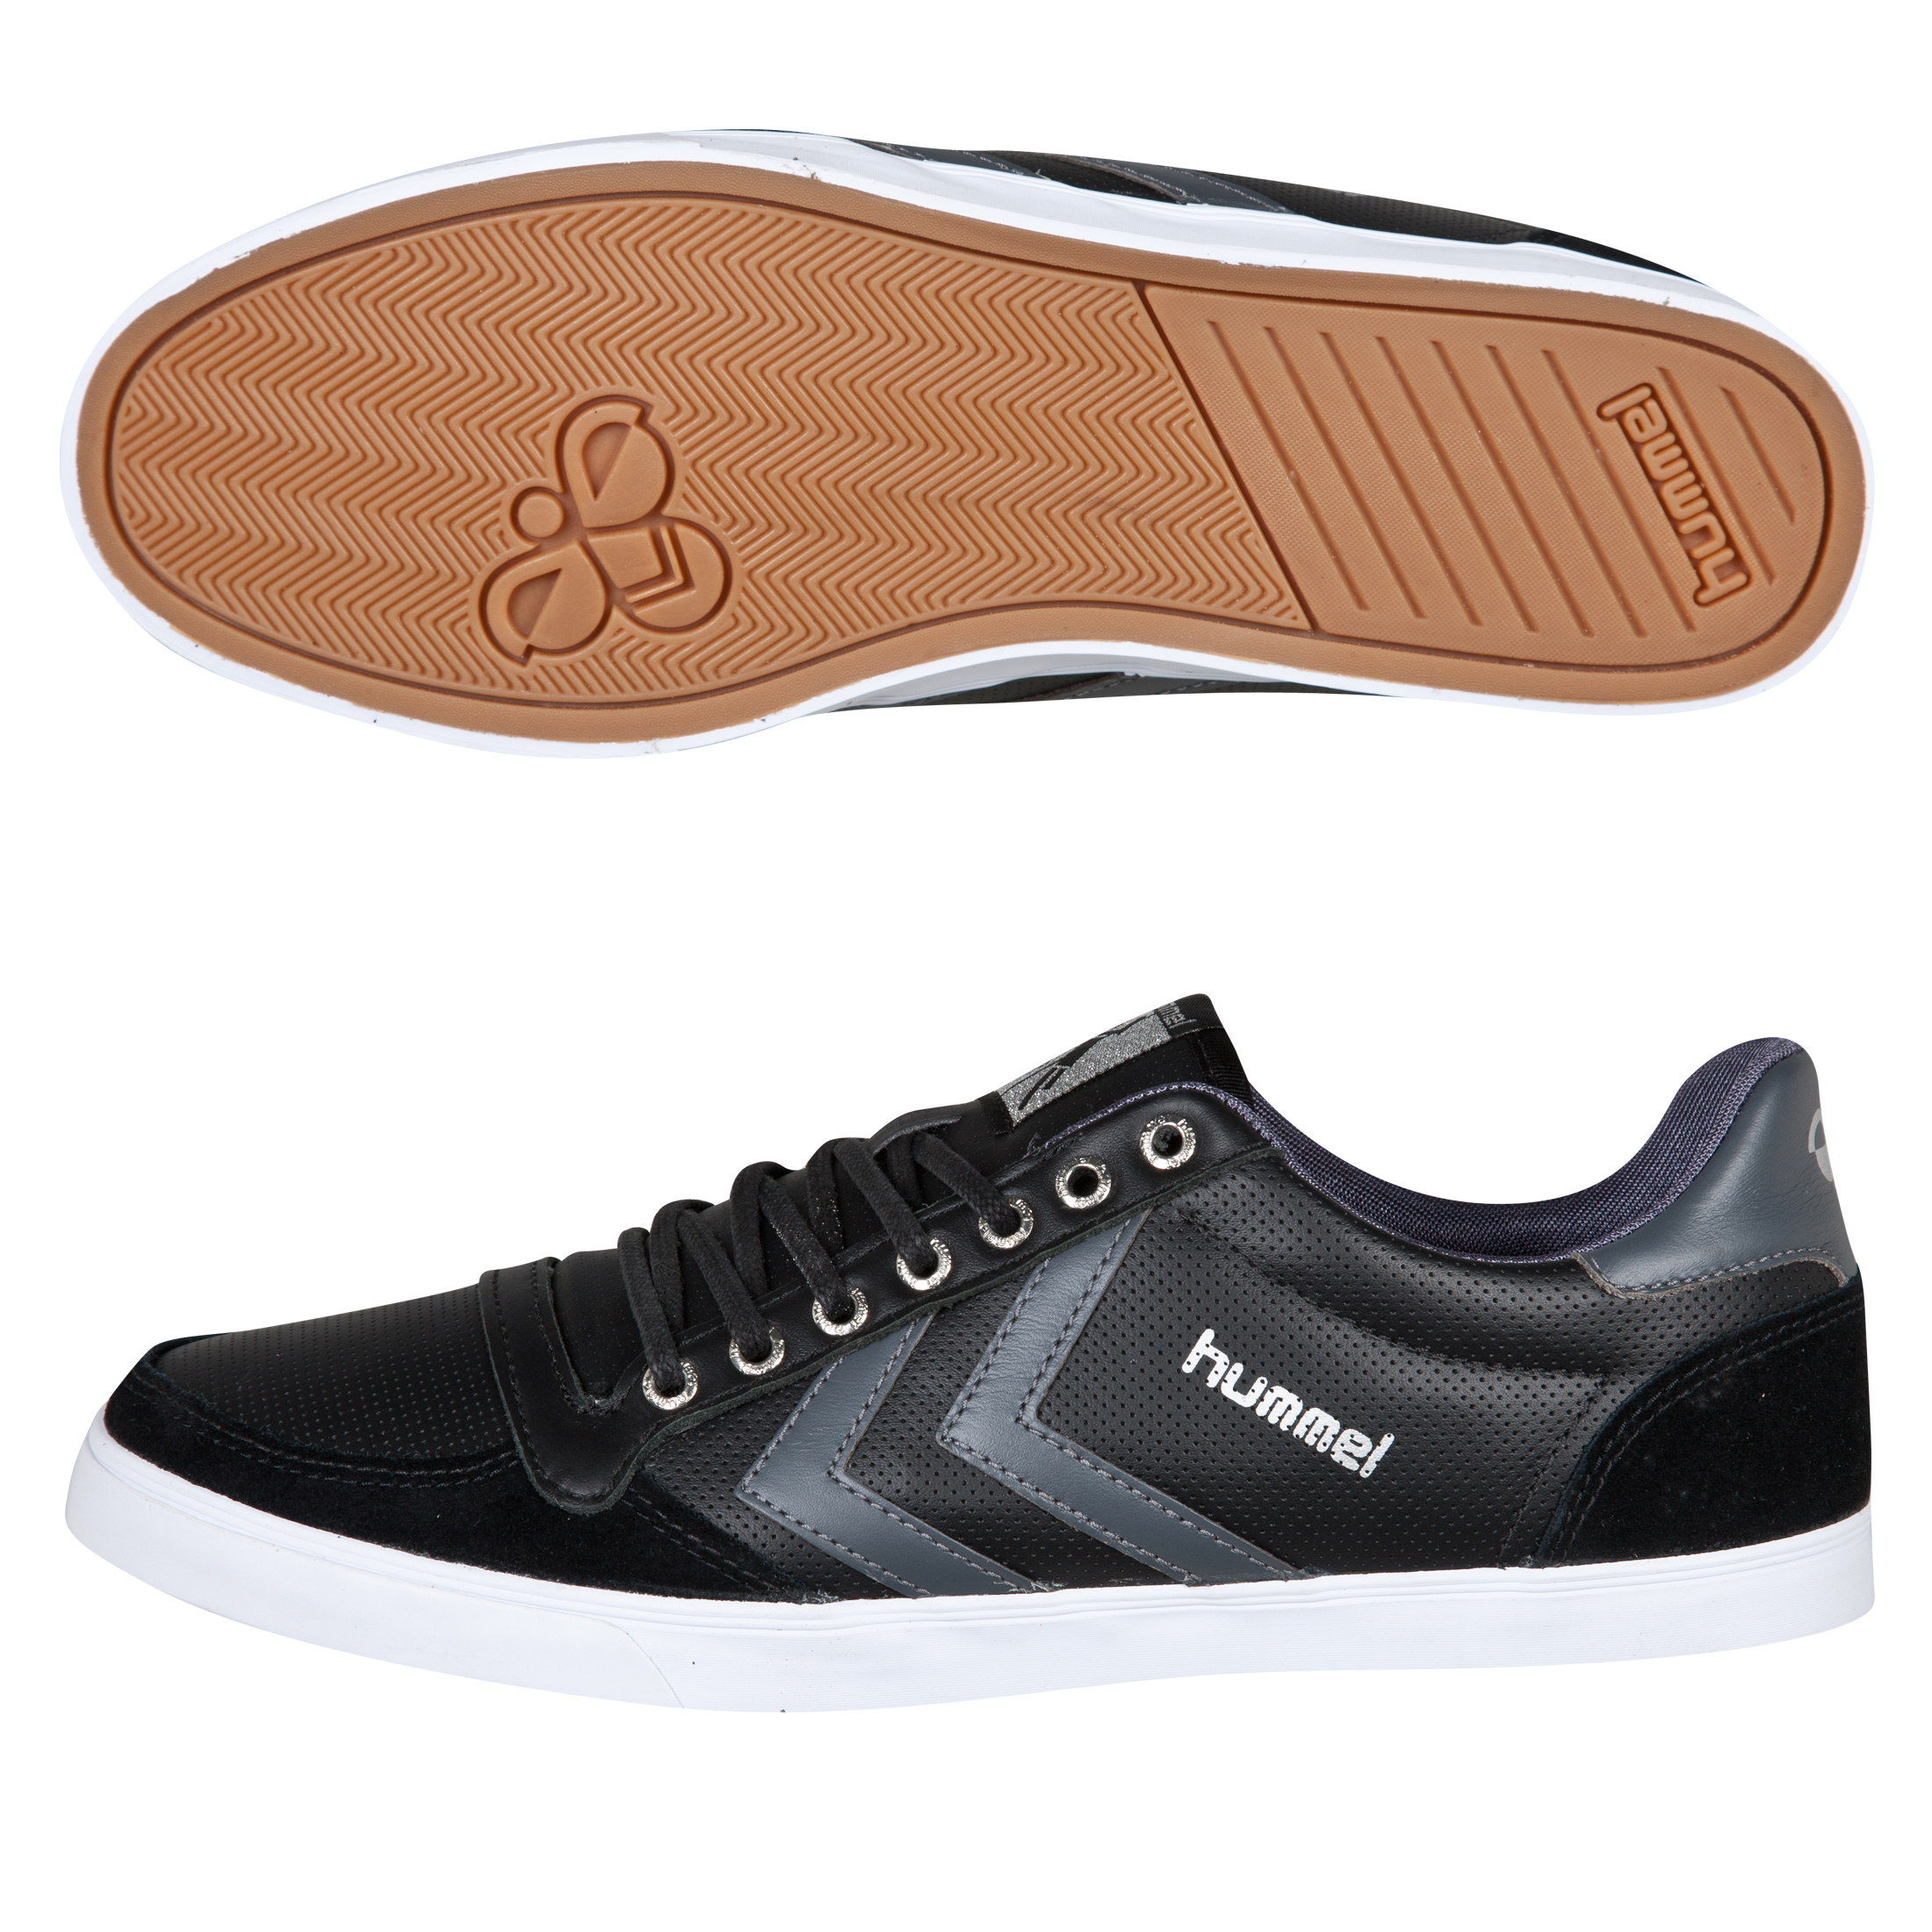 Hummel Slimmer Stadil Low Perf Leather Trainers - Black/Castlerock